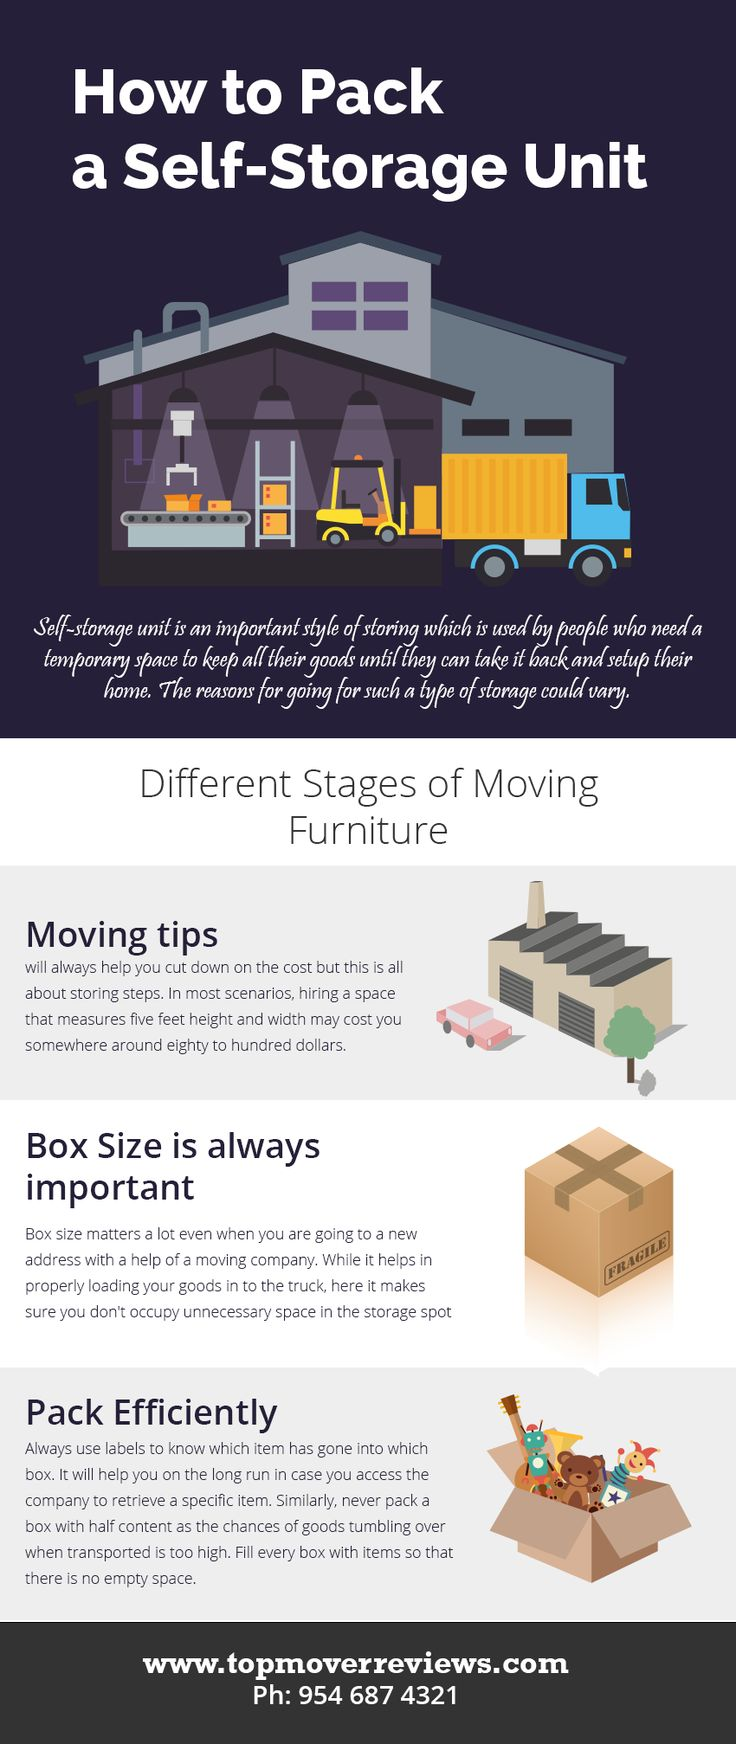 Top mover reviews moving tips helps people who. 215 best images about Self Storage on Pinterest   Affordable self